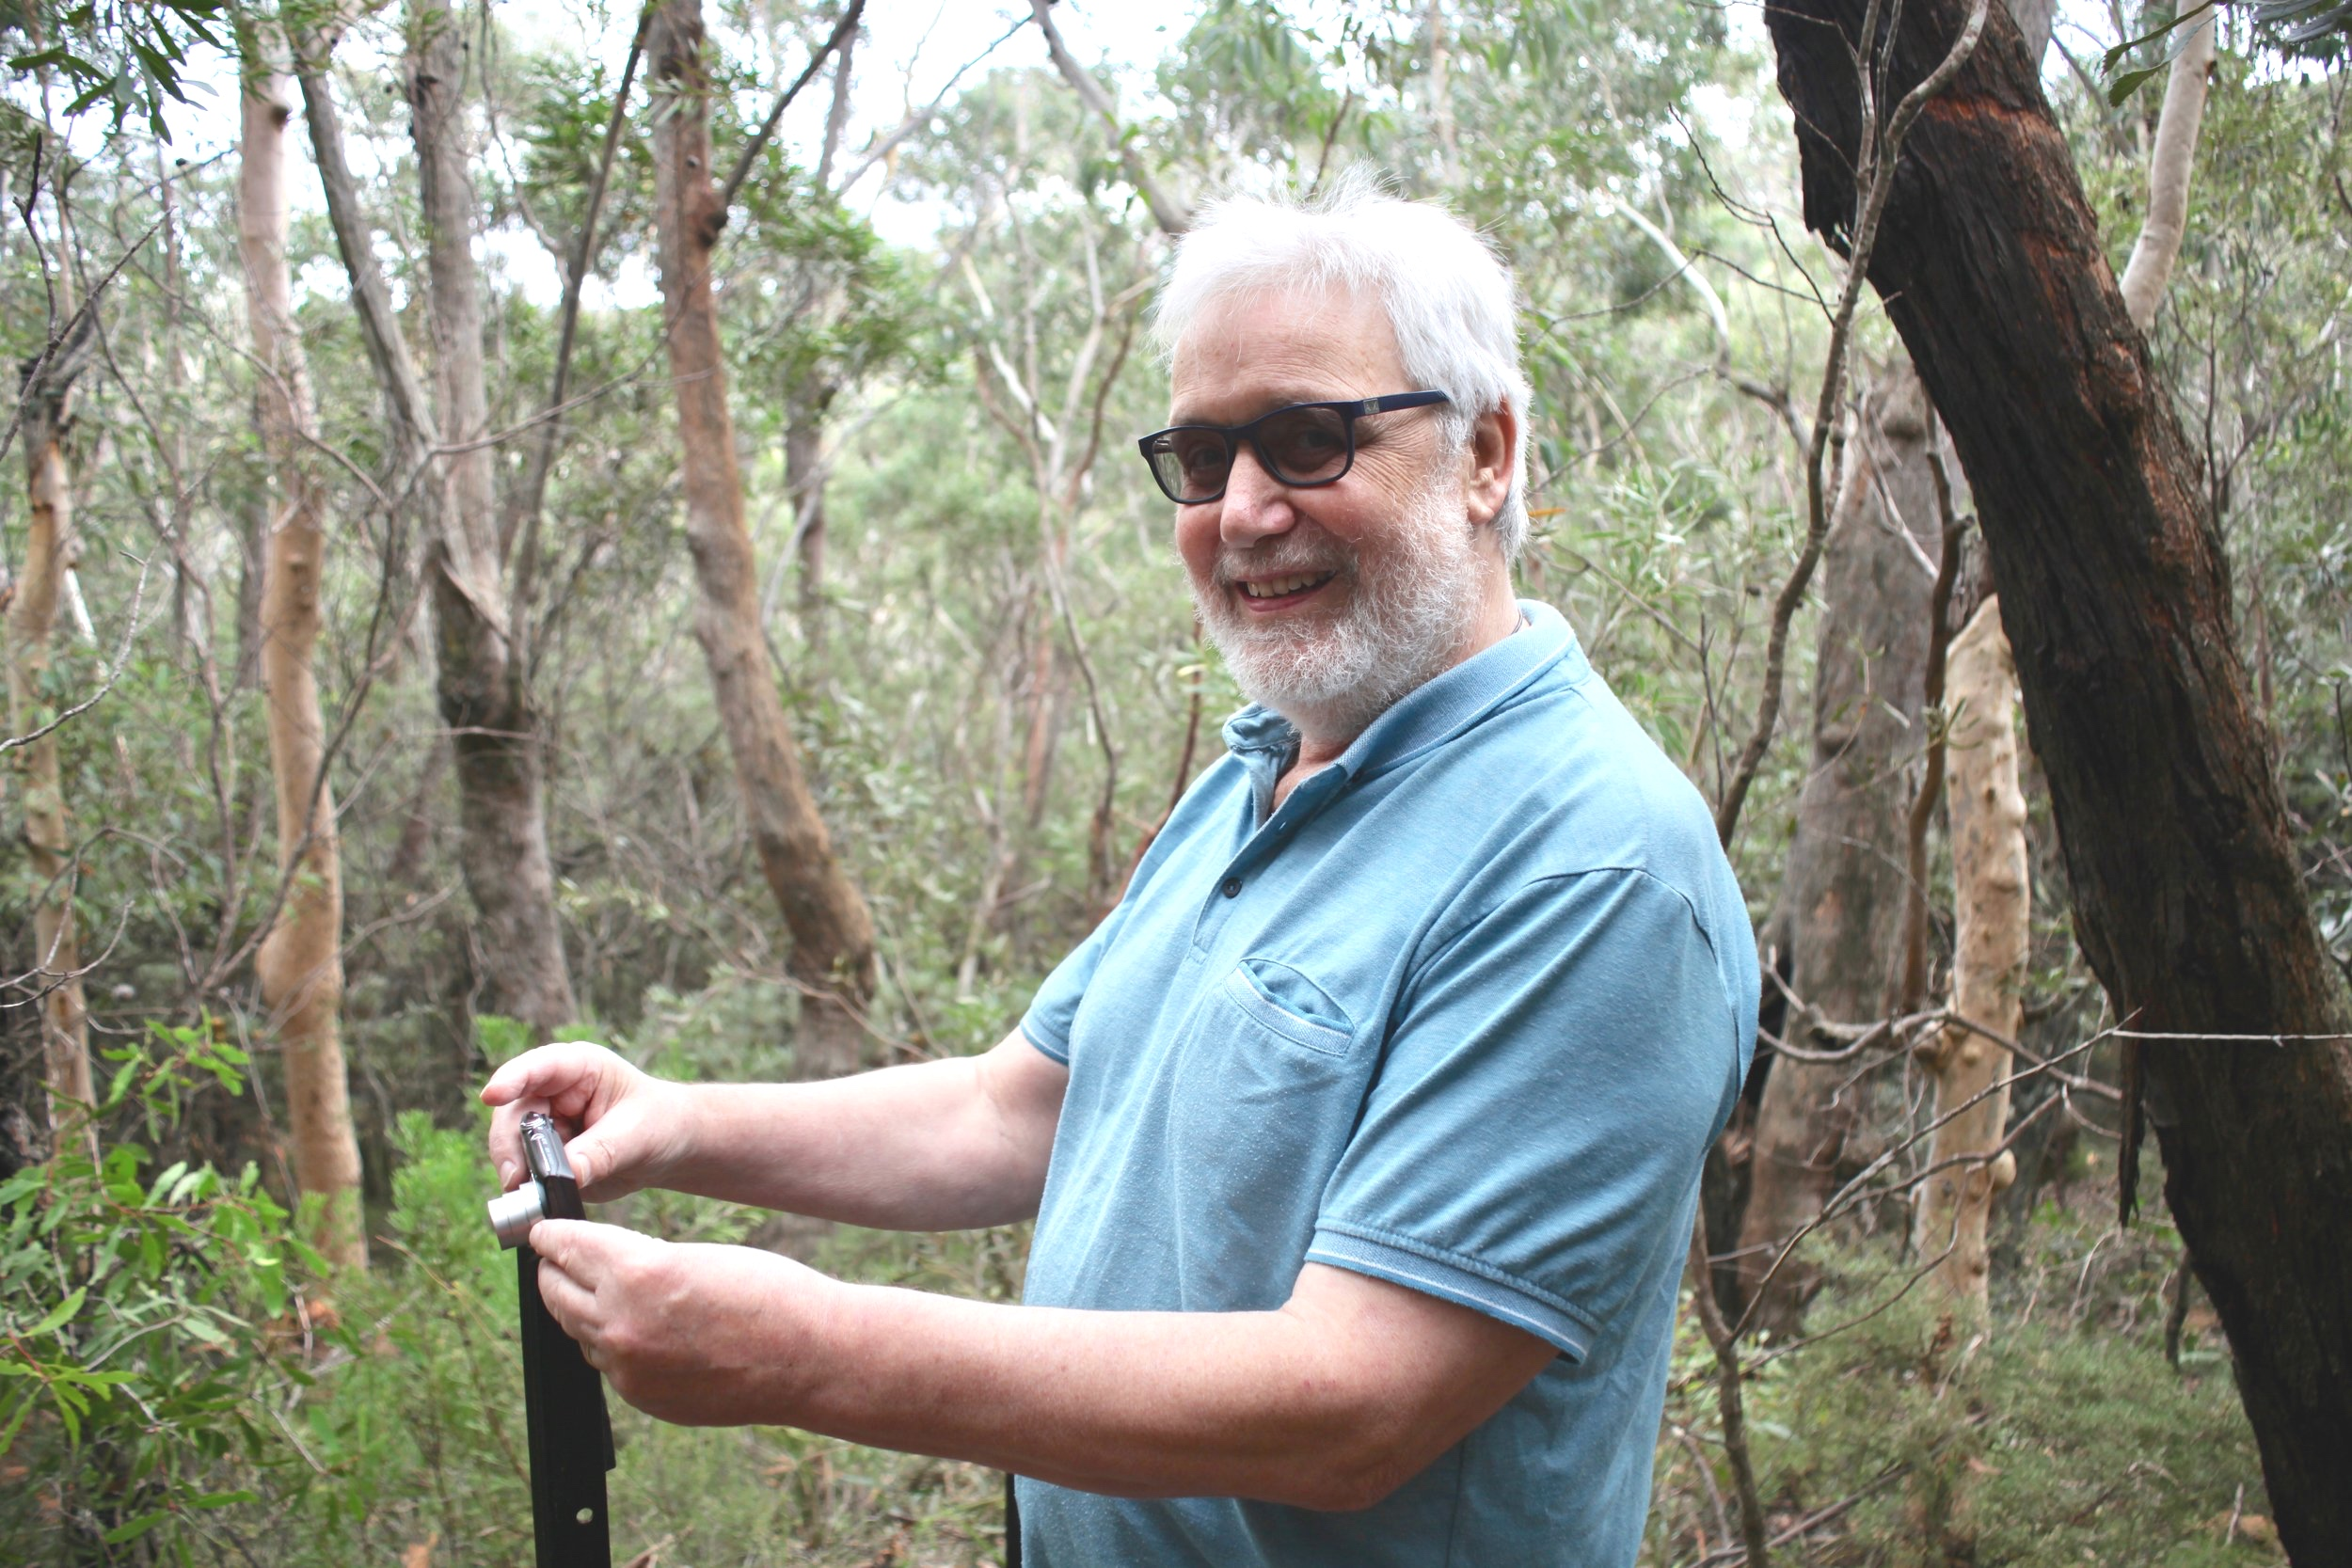 Frank Furlong, a volunteer citizen scientist records data near the Conservation Hut in Wentworth Falls.